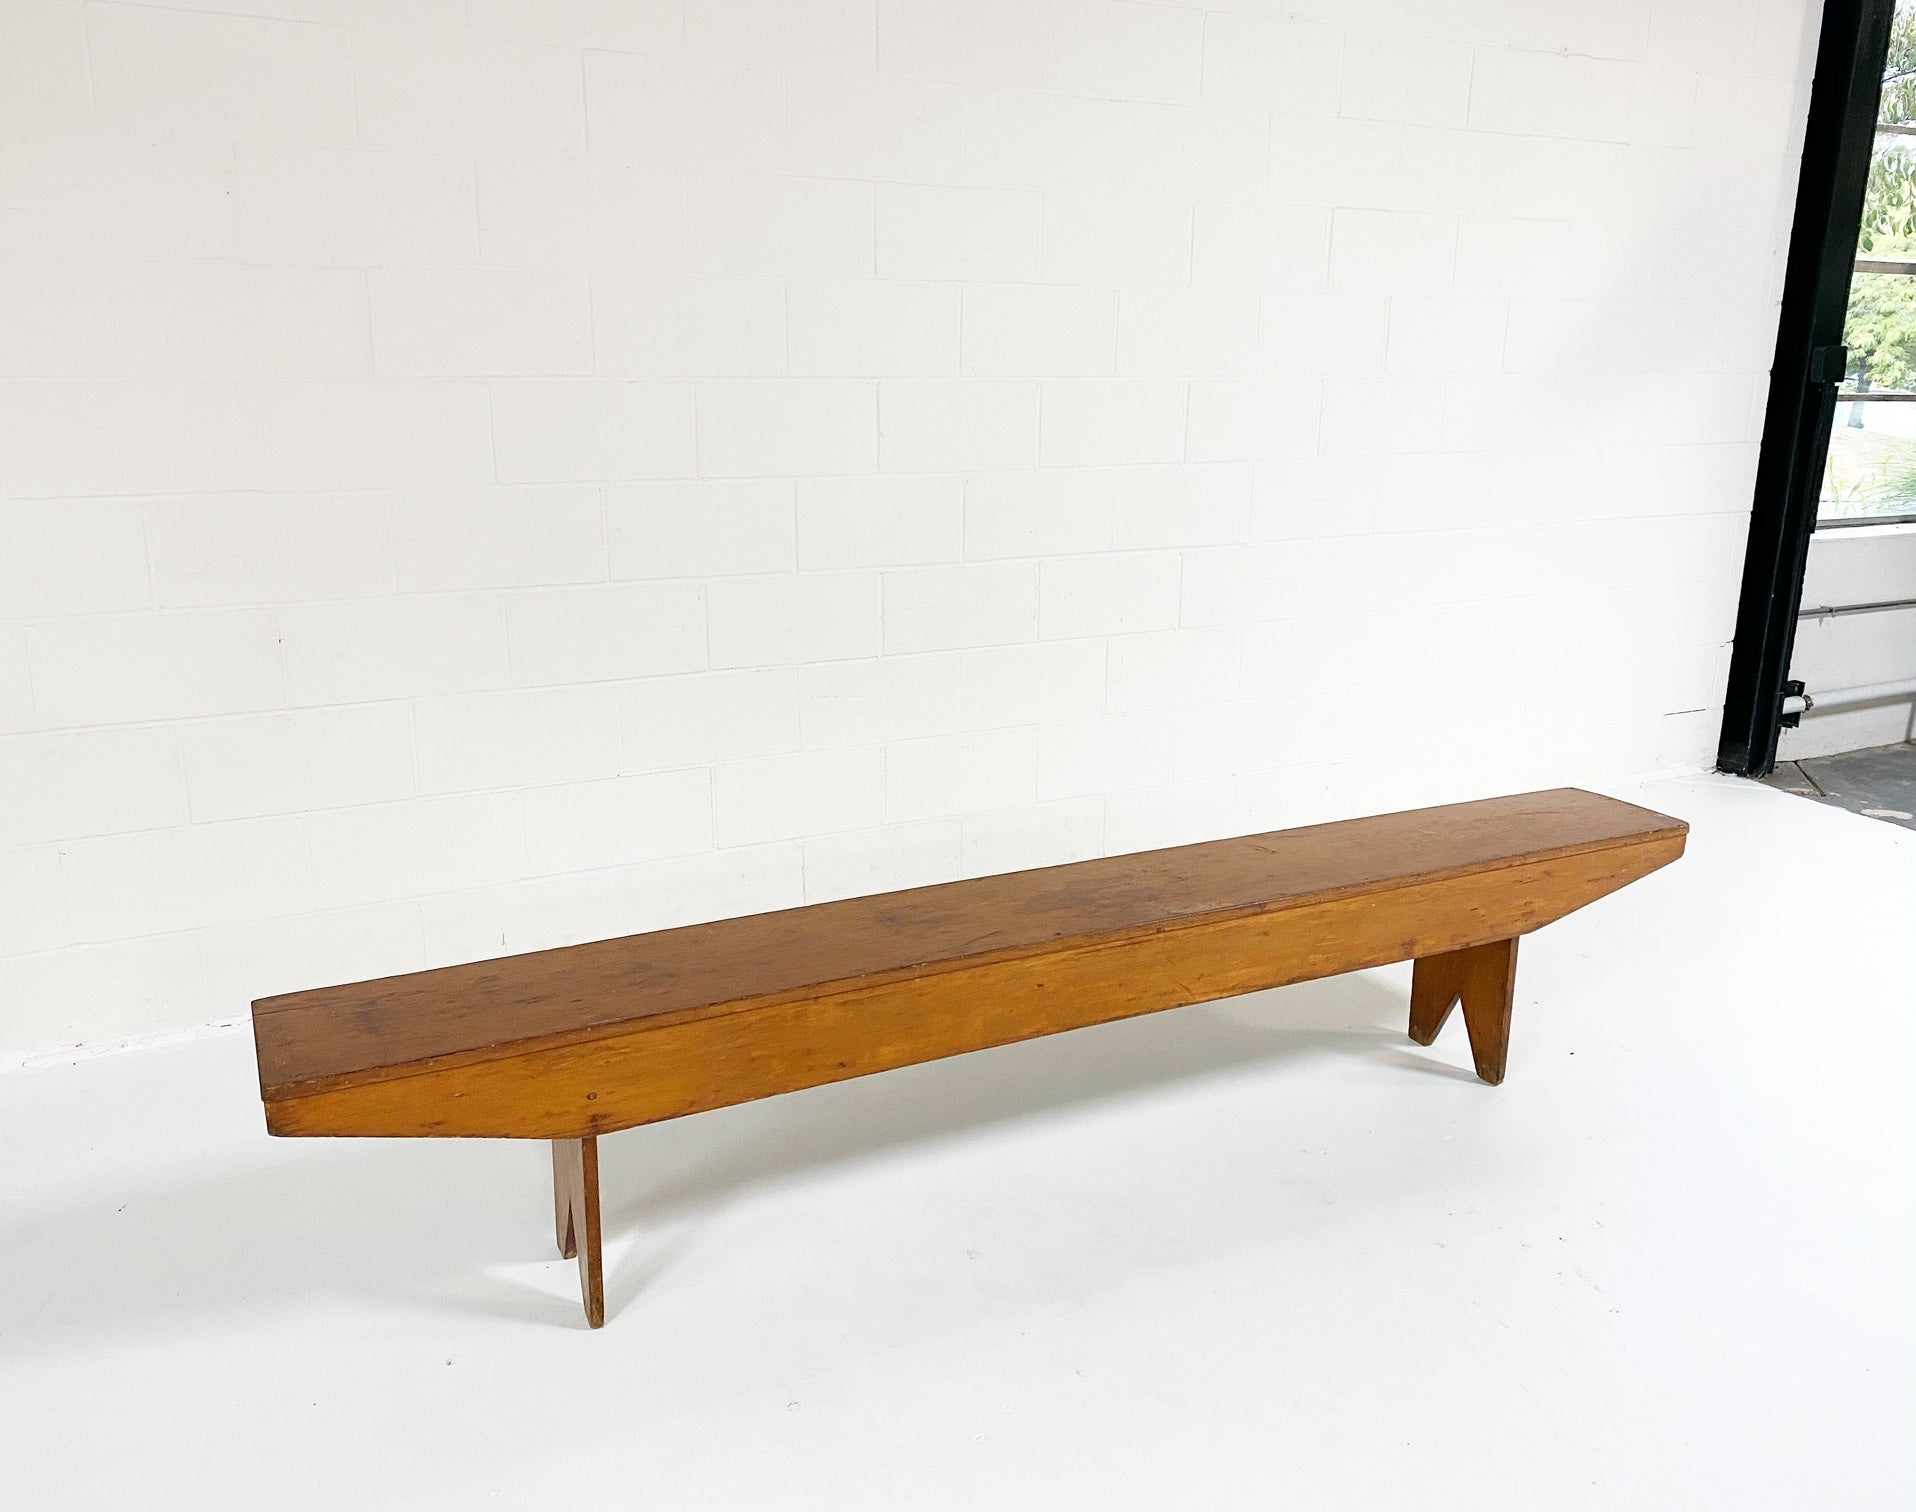 8 Foot Long Primitive Farmhouse Bench